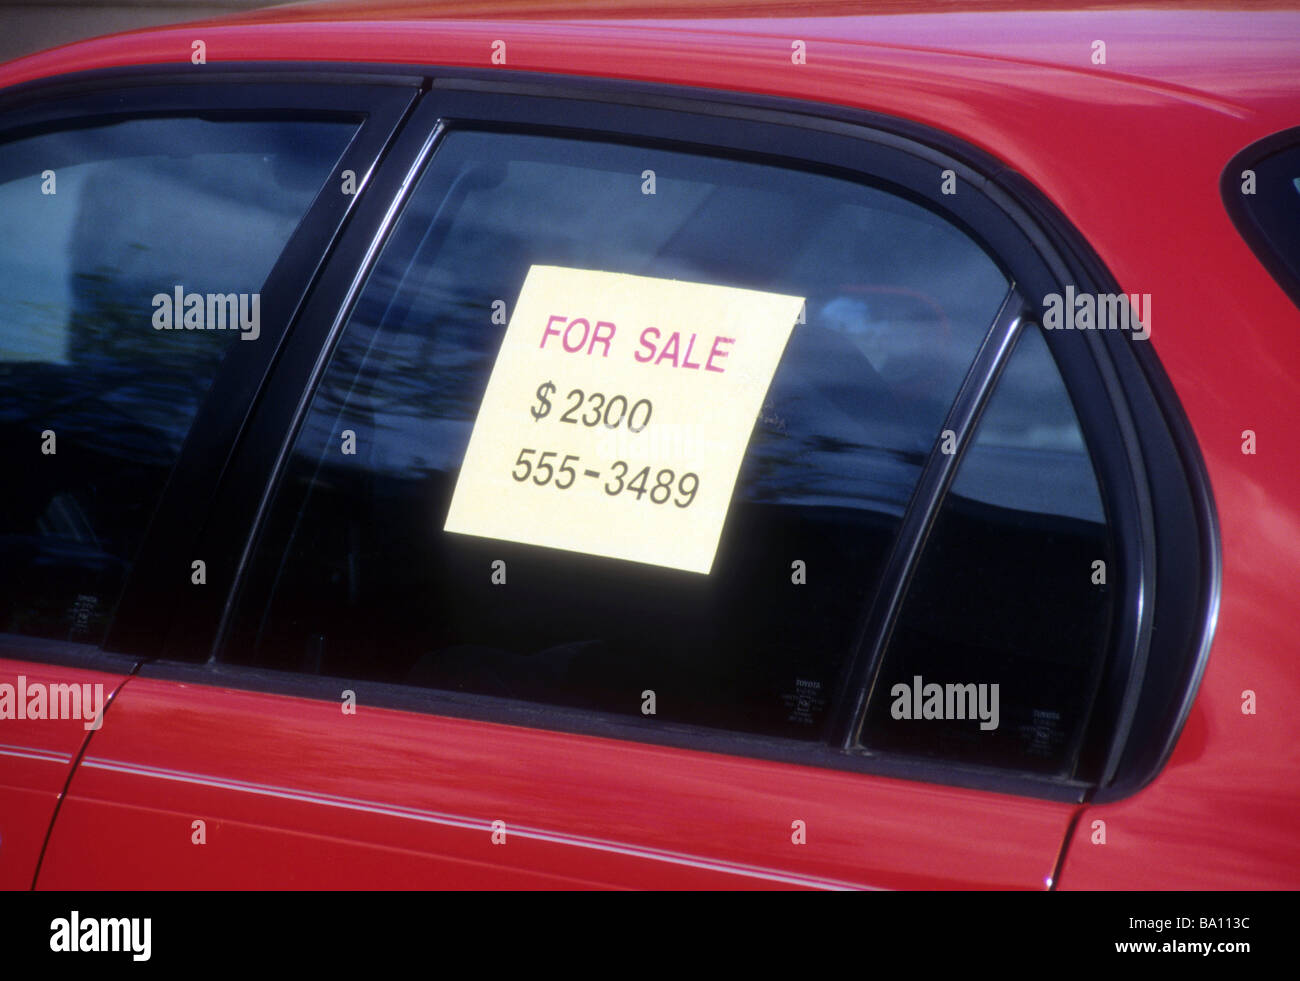 vehicle for sale signs